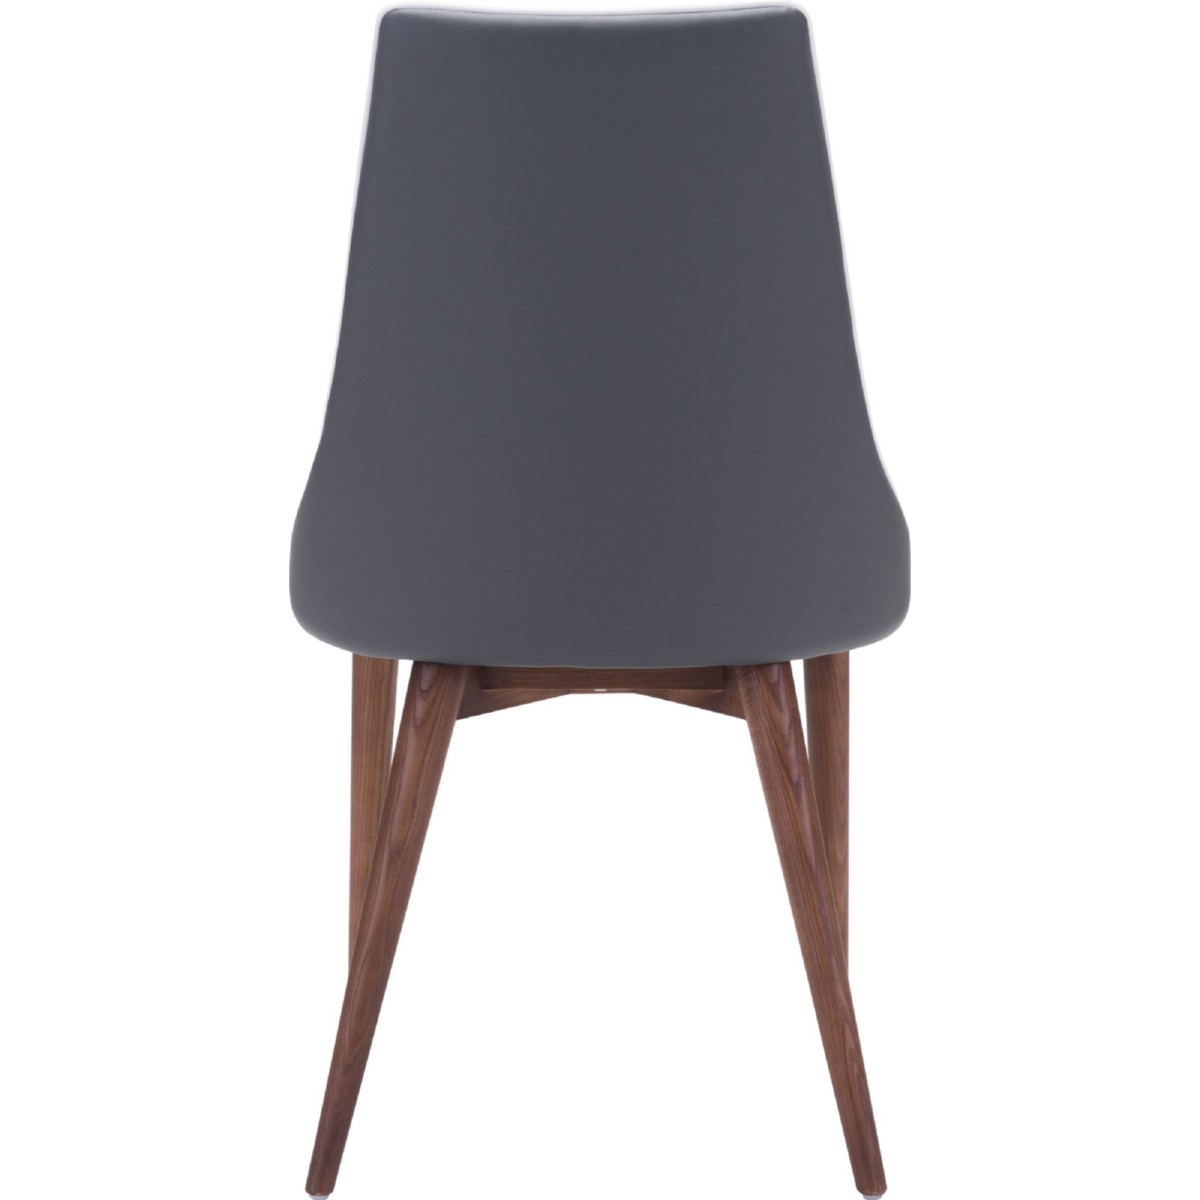 Zuo Modern Moor Dining Chair In Dark Gray Leatherette W/ Contrast Piping On  Tapered Wood Legs (Set Of 2)